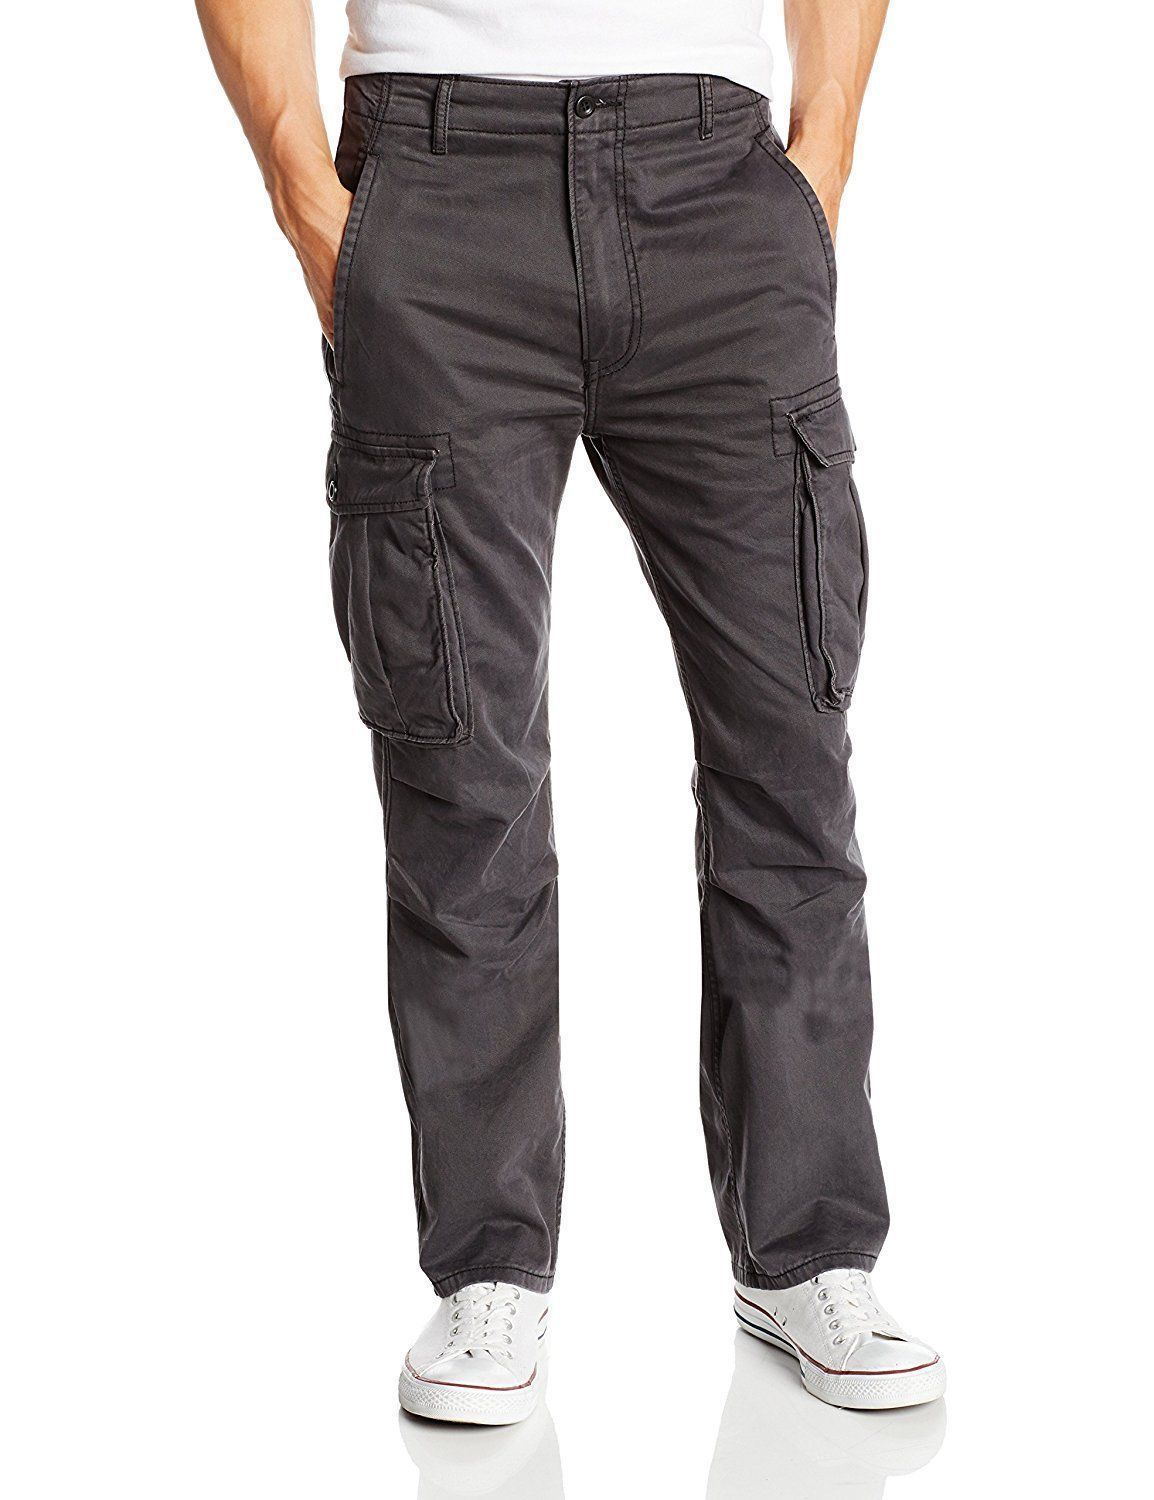 Levi's Strauss Men's Original Relaxed Fit Cargo I Pants Gray 124620049